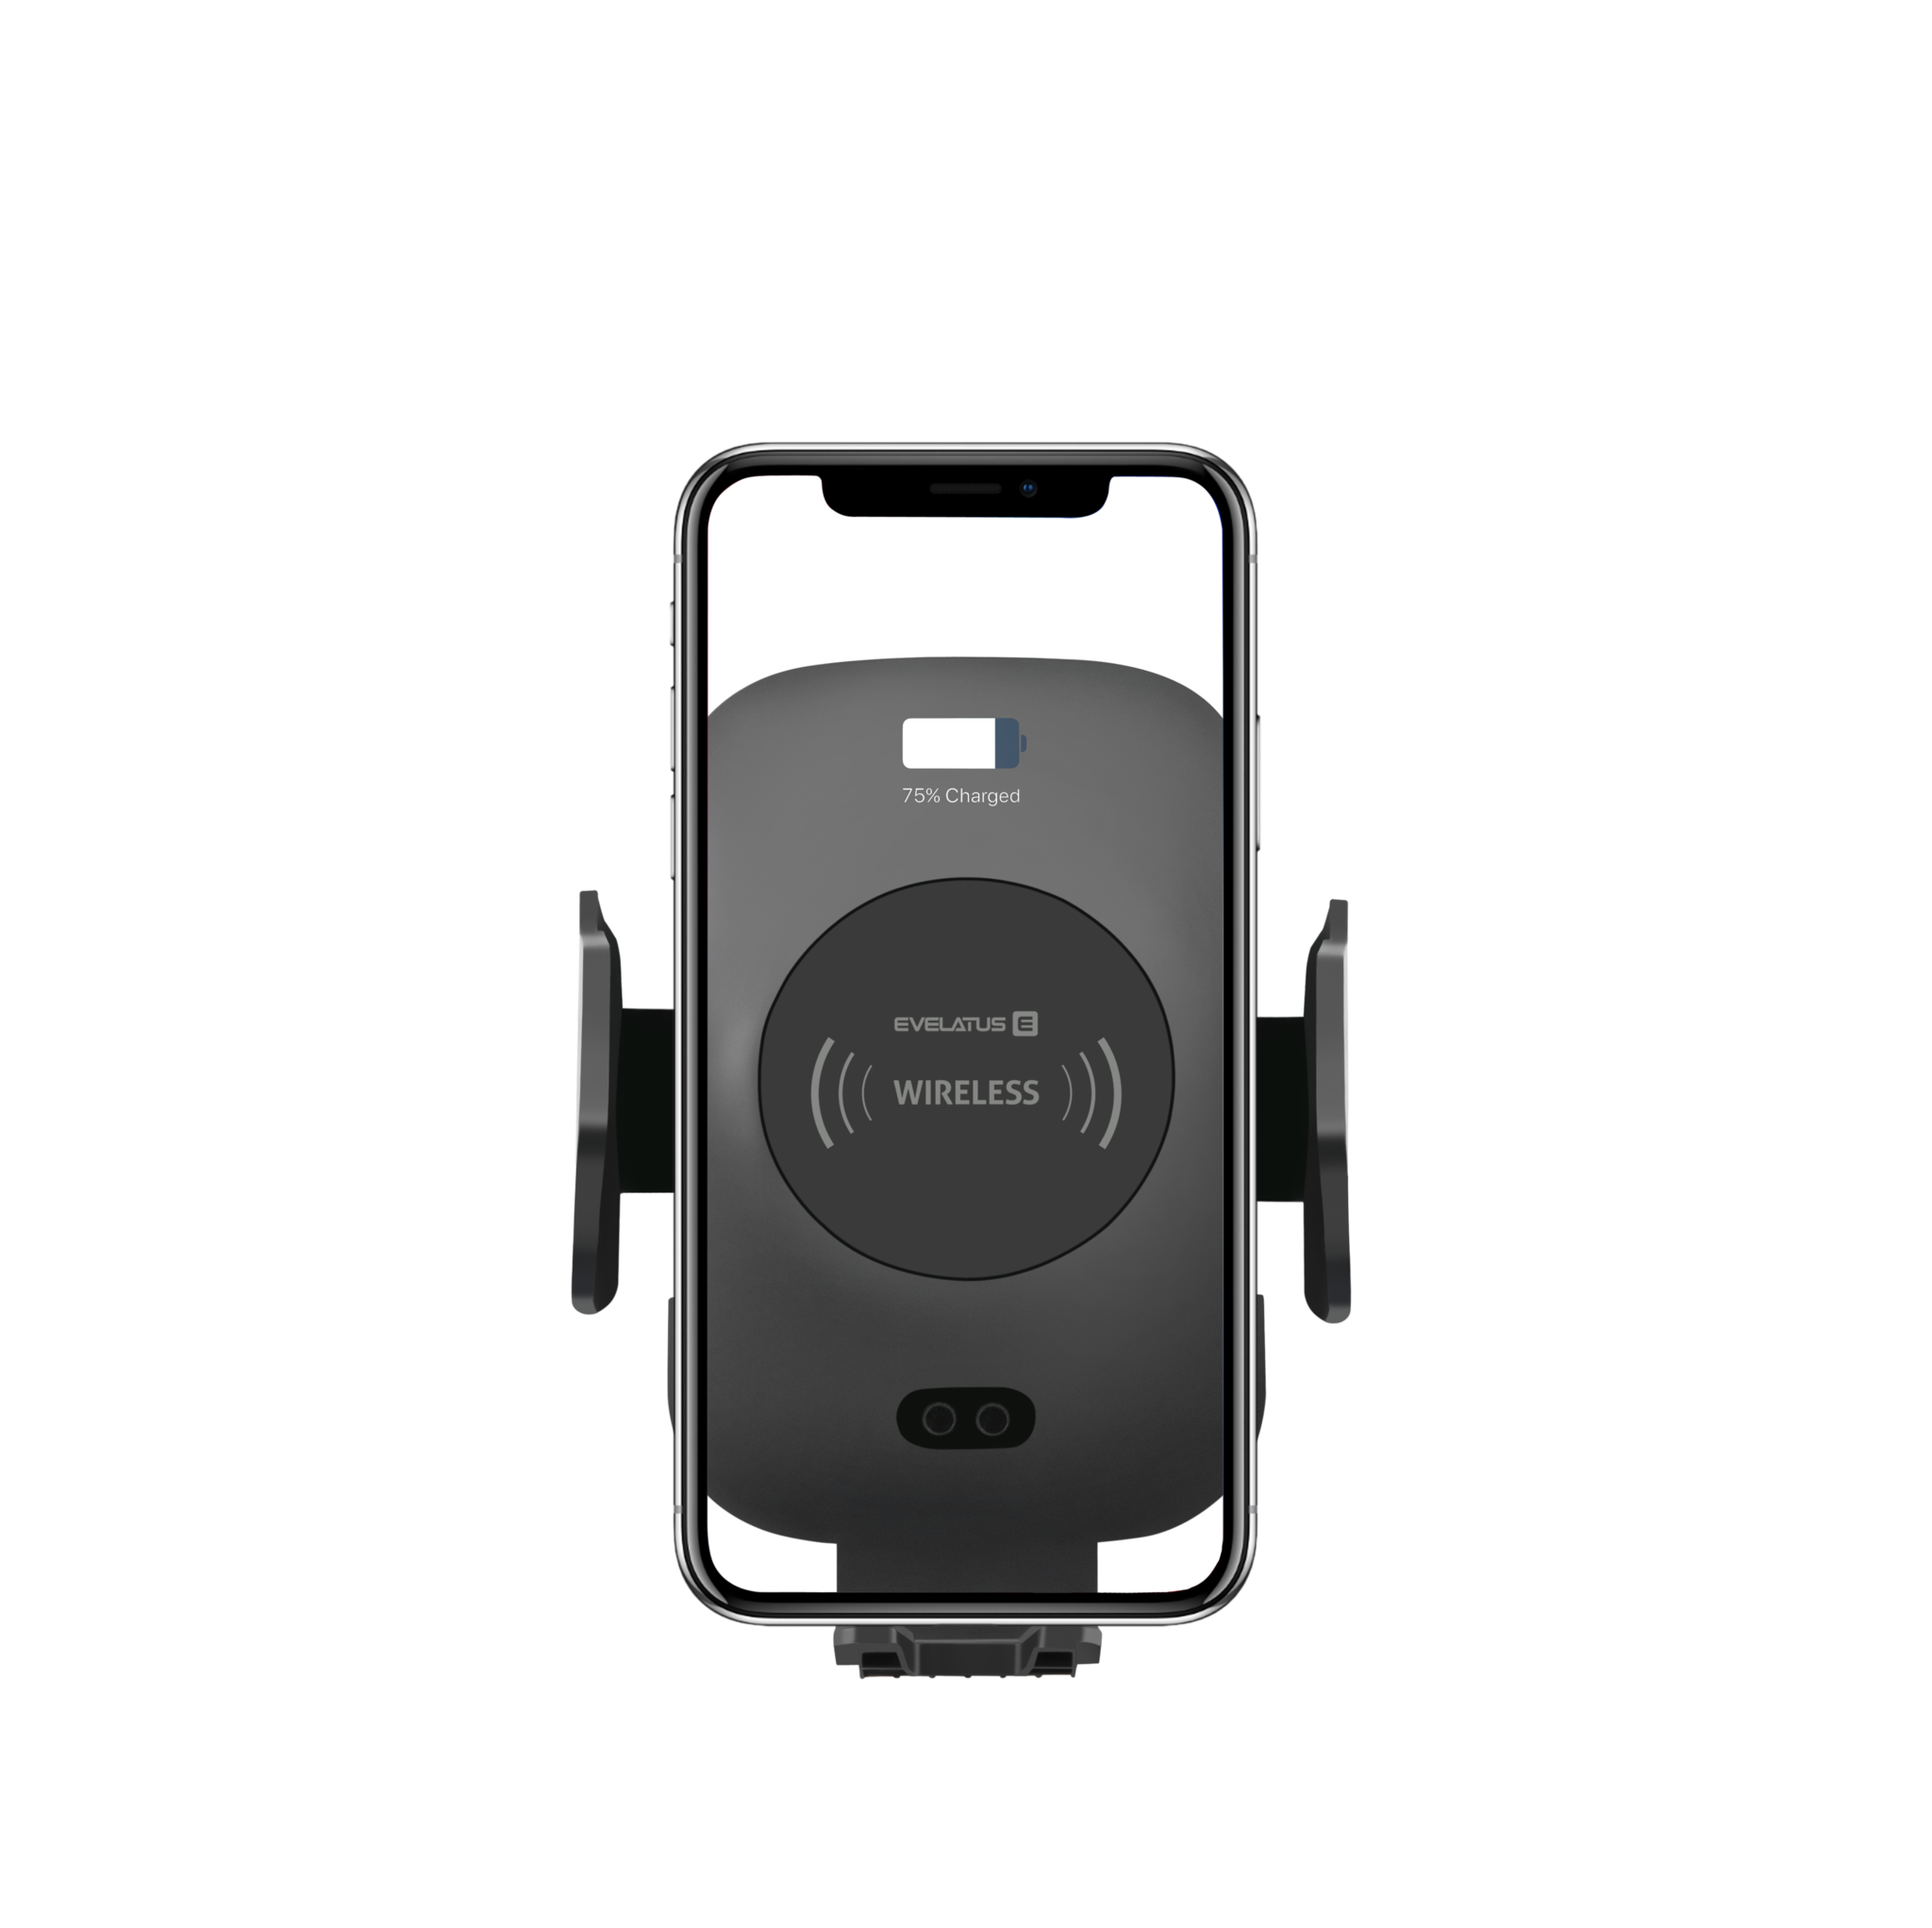 Evelatus Smartphone Car Holder with wireless Charging WCH01 - Black